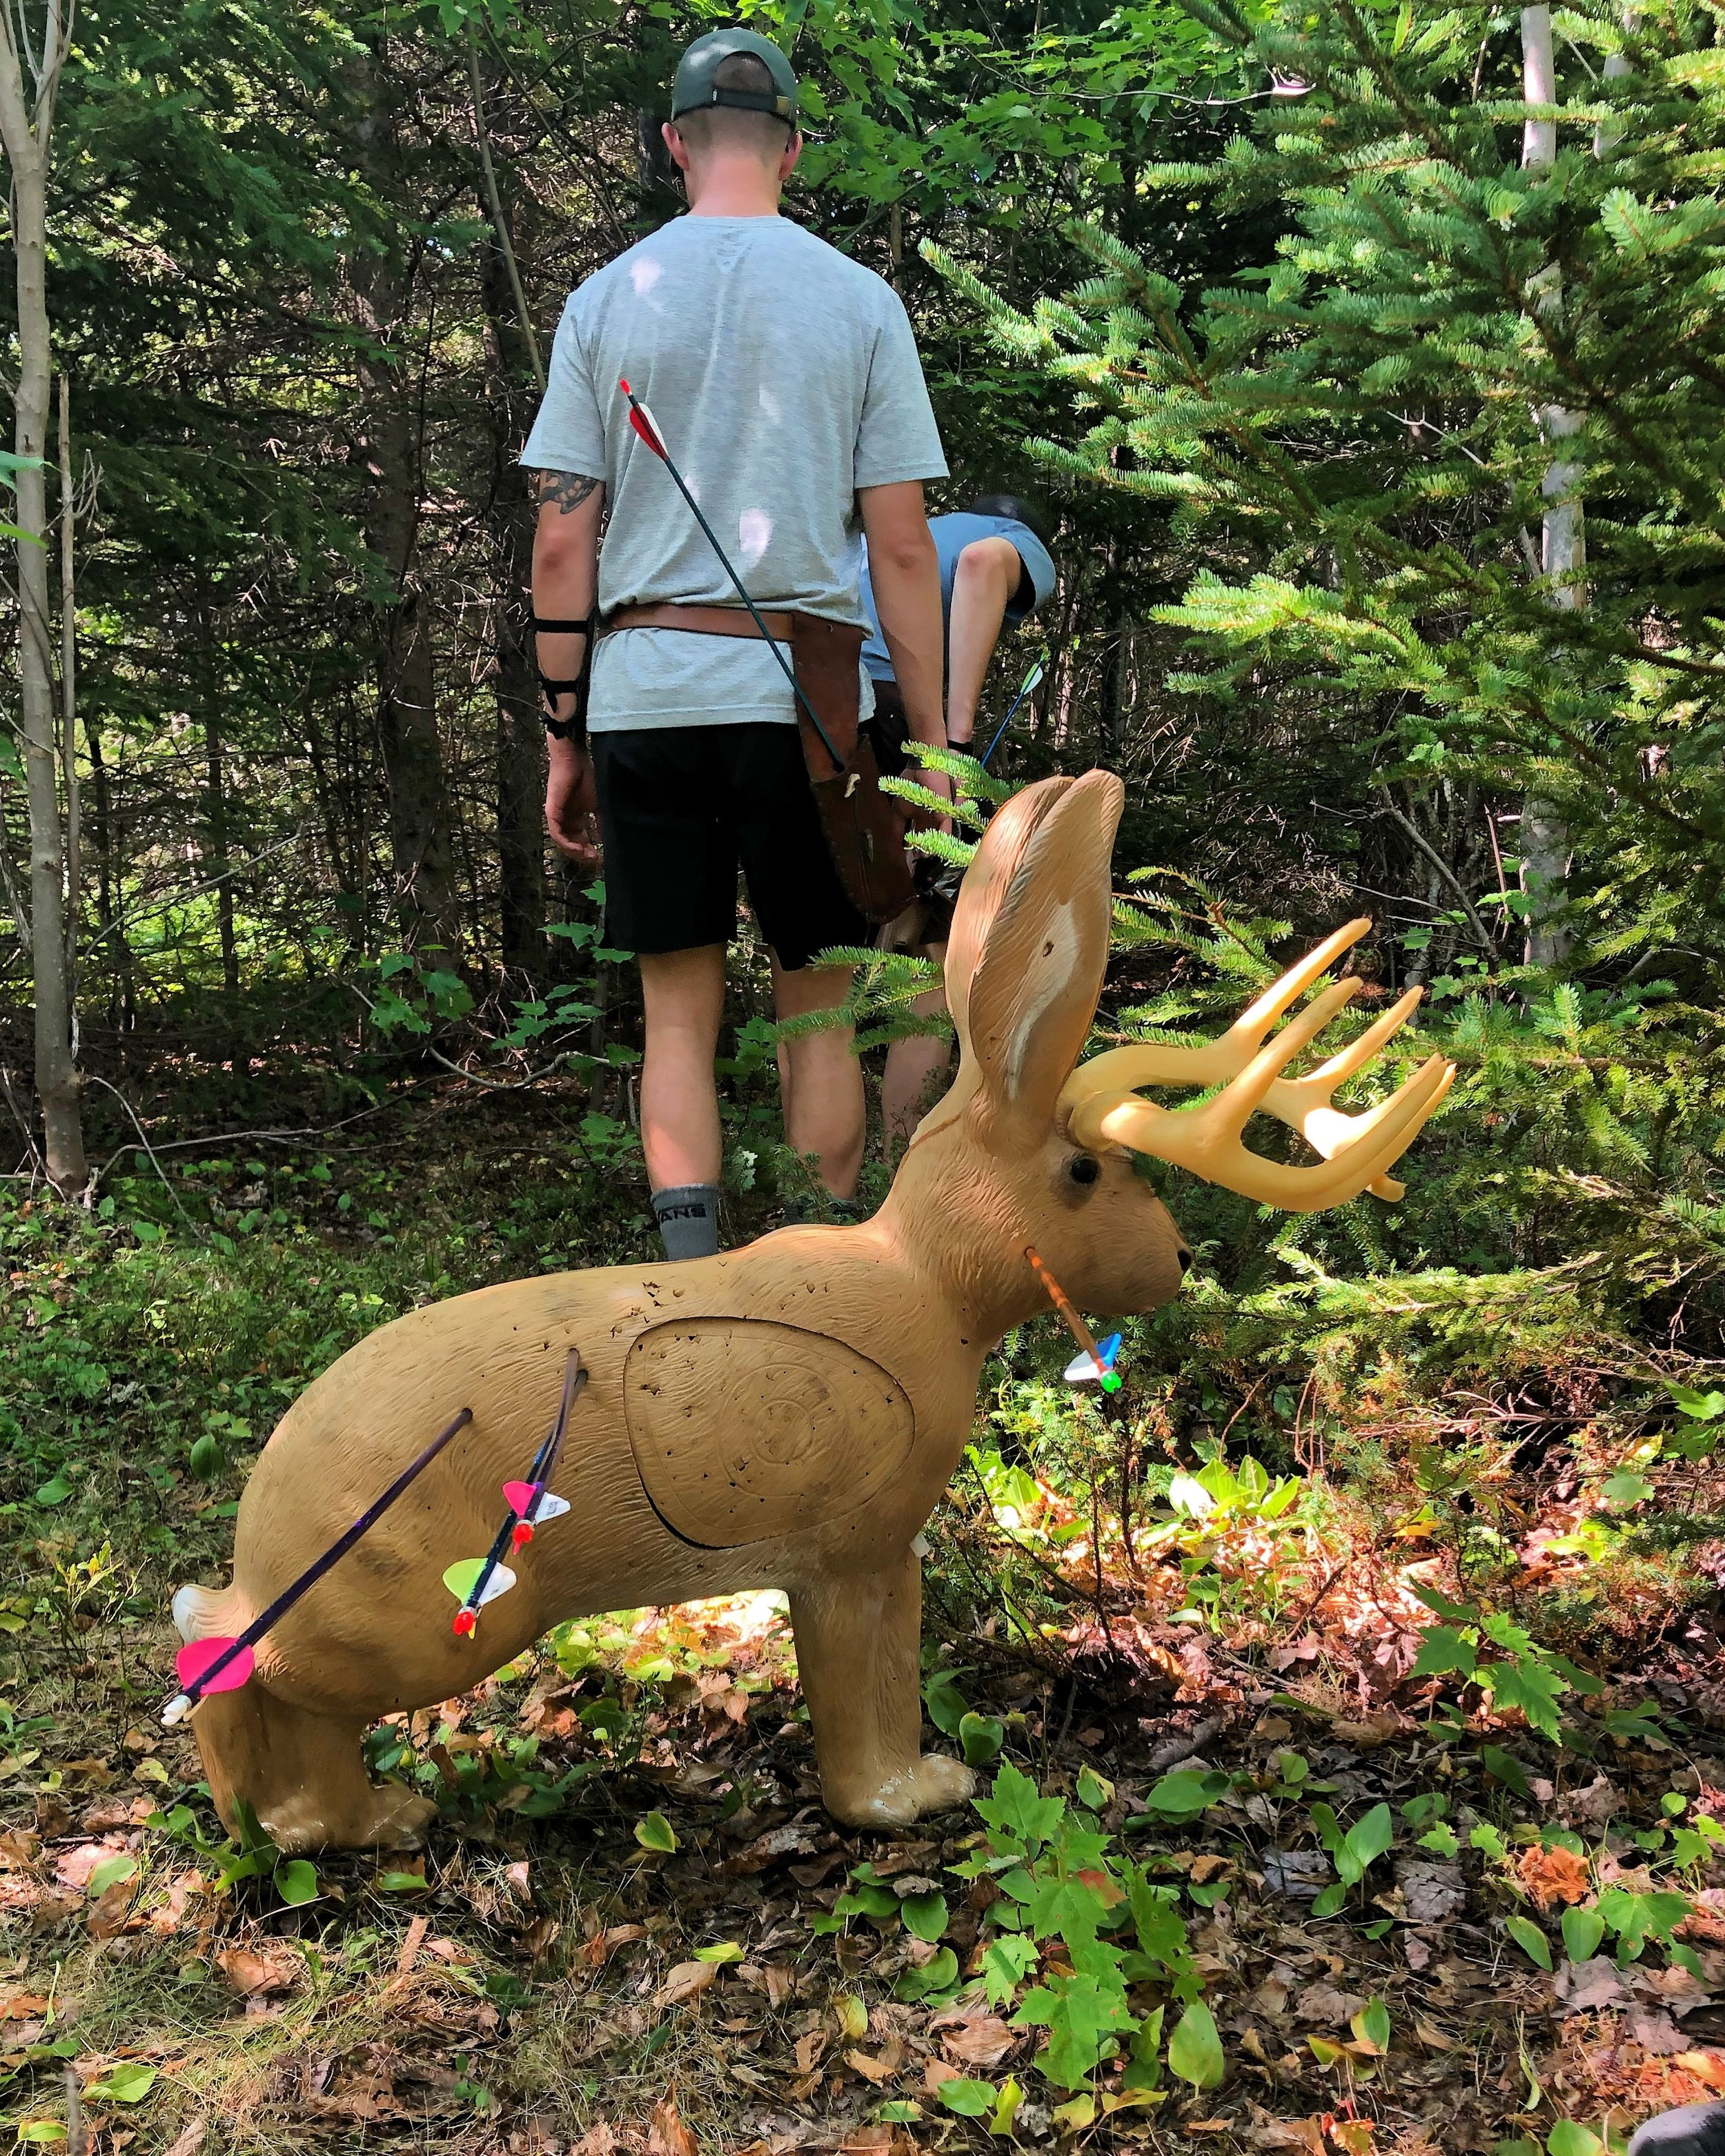 3D Jackelope Target in the woods